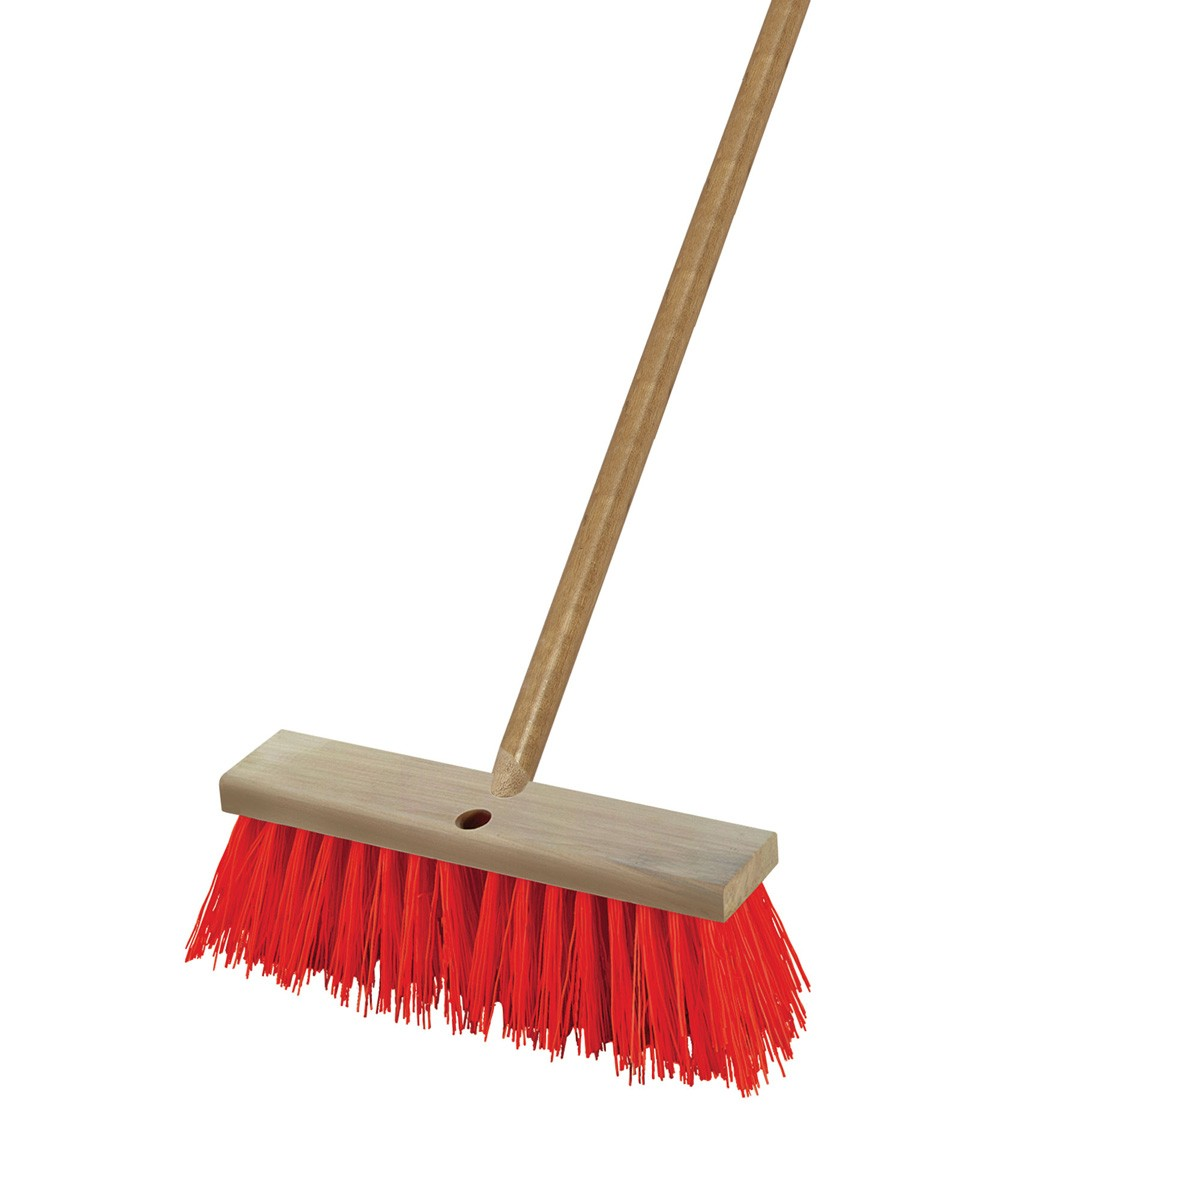 Gives brooms a long life a new broom will last longer if you soak its bristles in a bucket of salty water. After 20 mins ,remove the broom and let it dry.